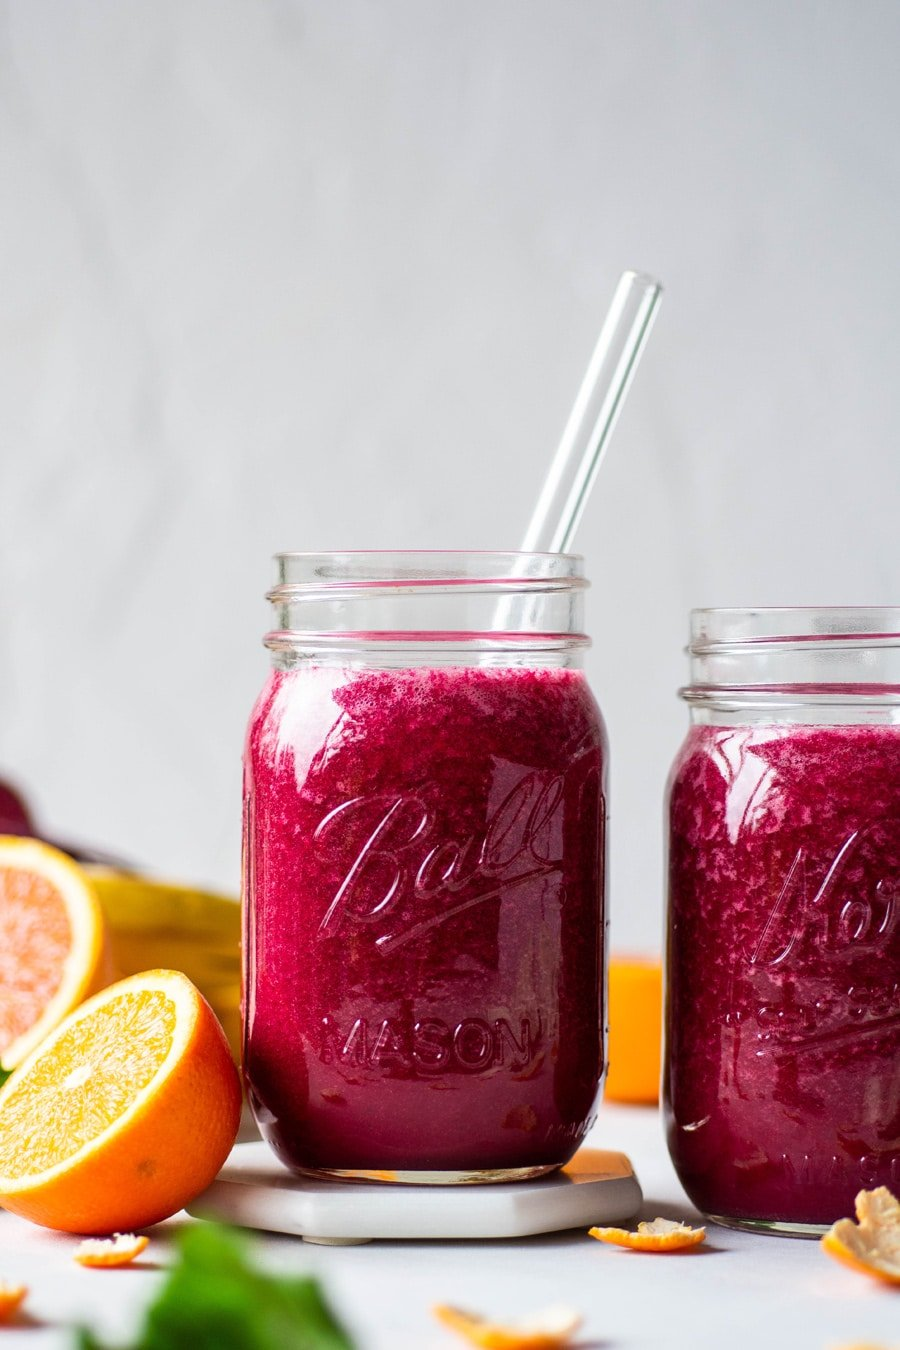 Straight on shot of 2 glass ball jars filled with a vibrant pink / red glowing beet smoothie. On a light background surrounded by fresh cut fruit and beet greens.